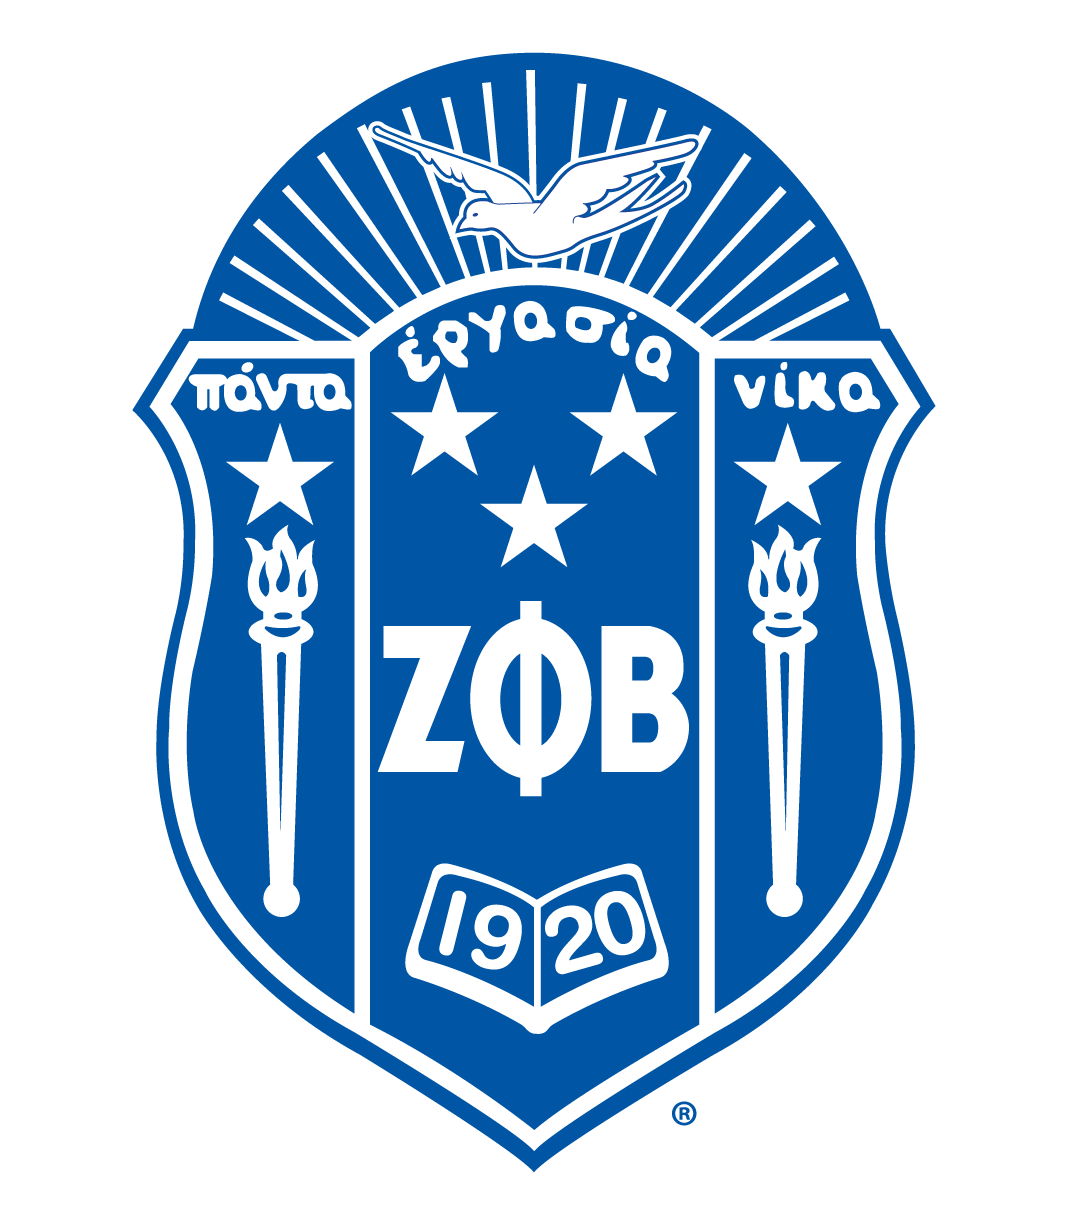 ZPHIB Atlantic Region.